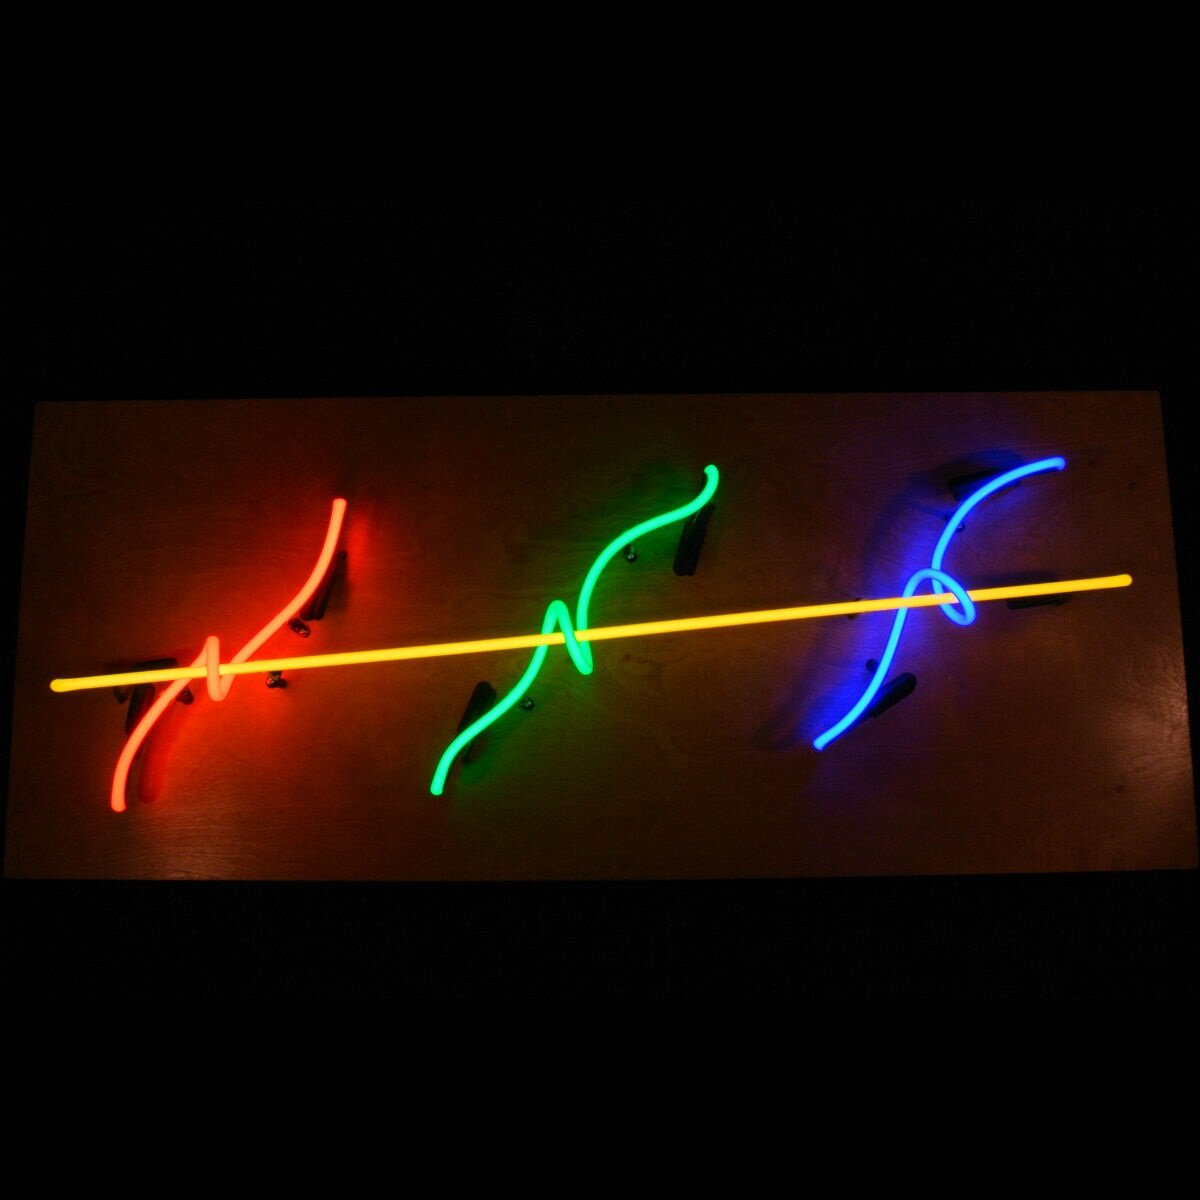 Contemporary Dance Neon Light Sculpture by John Barton - BartonNeonMagic.com